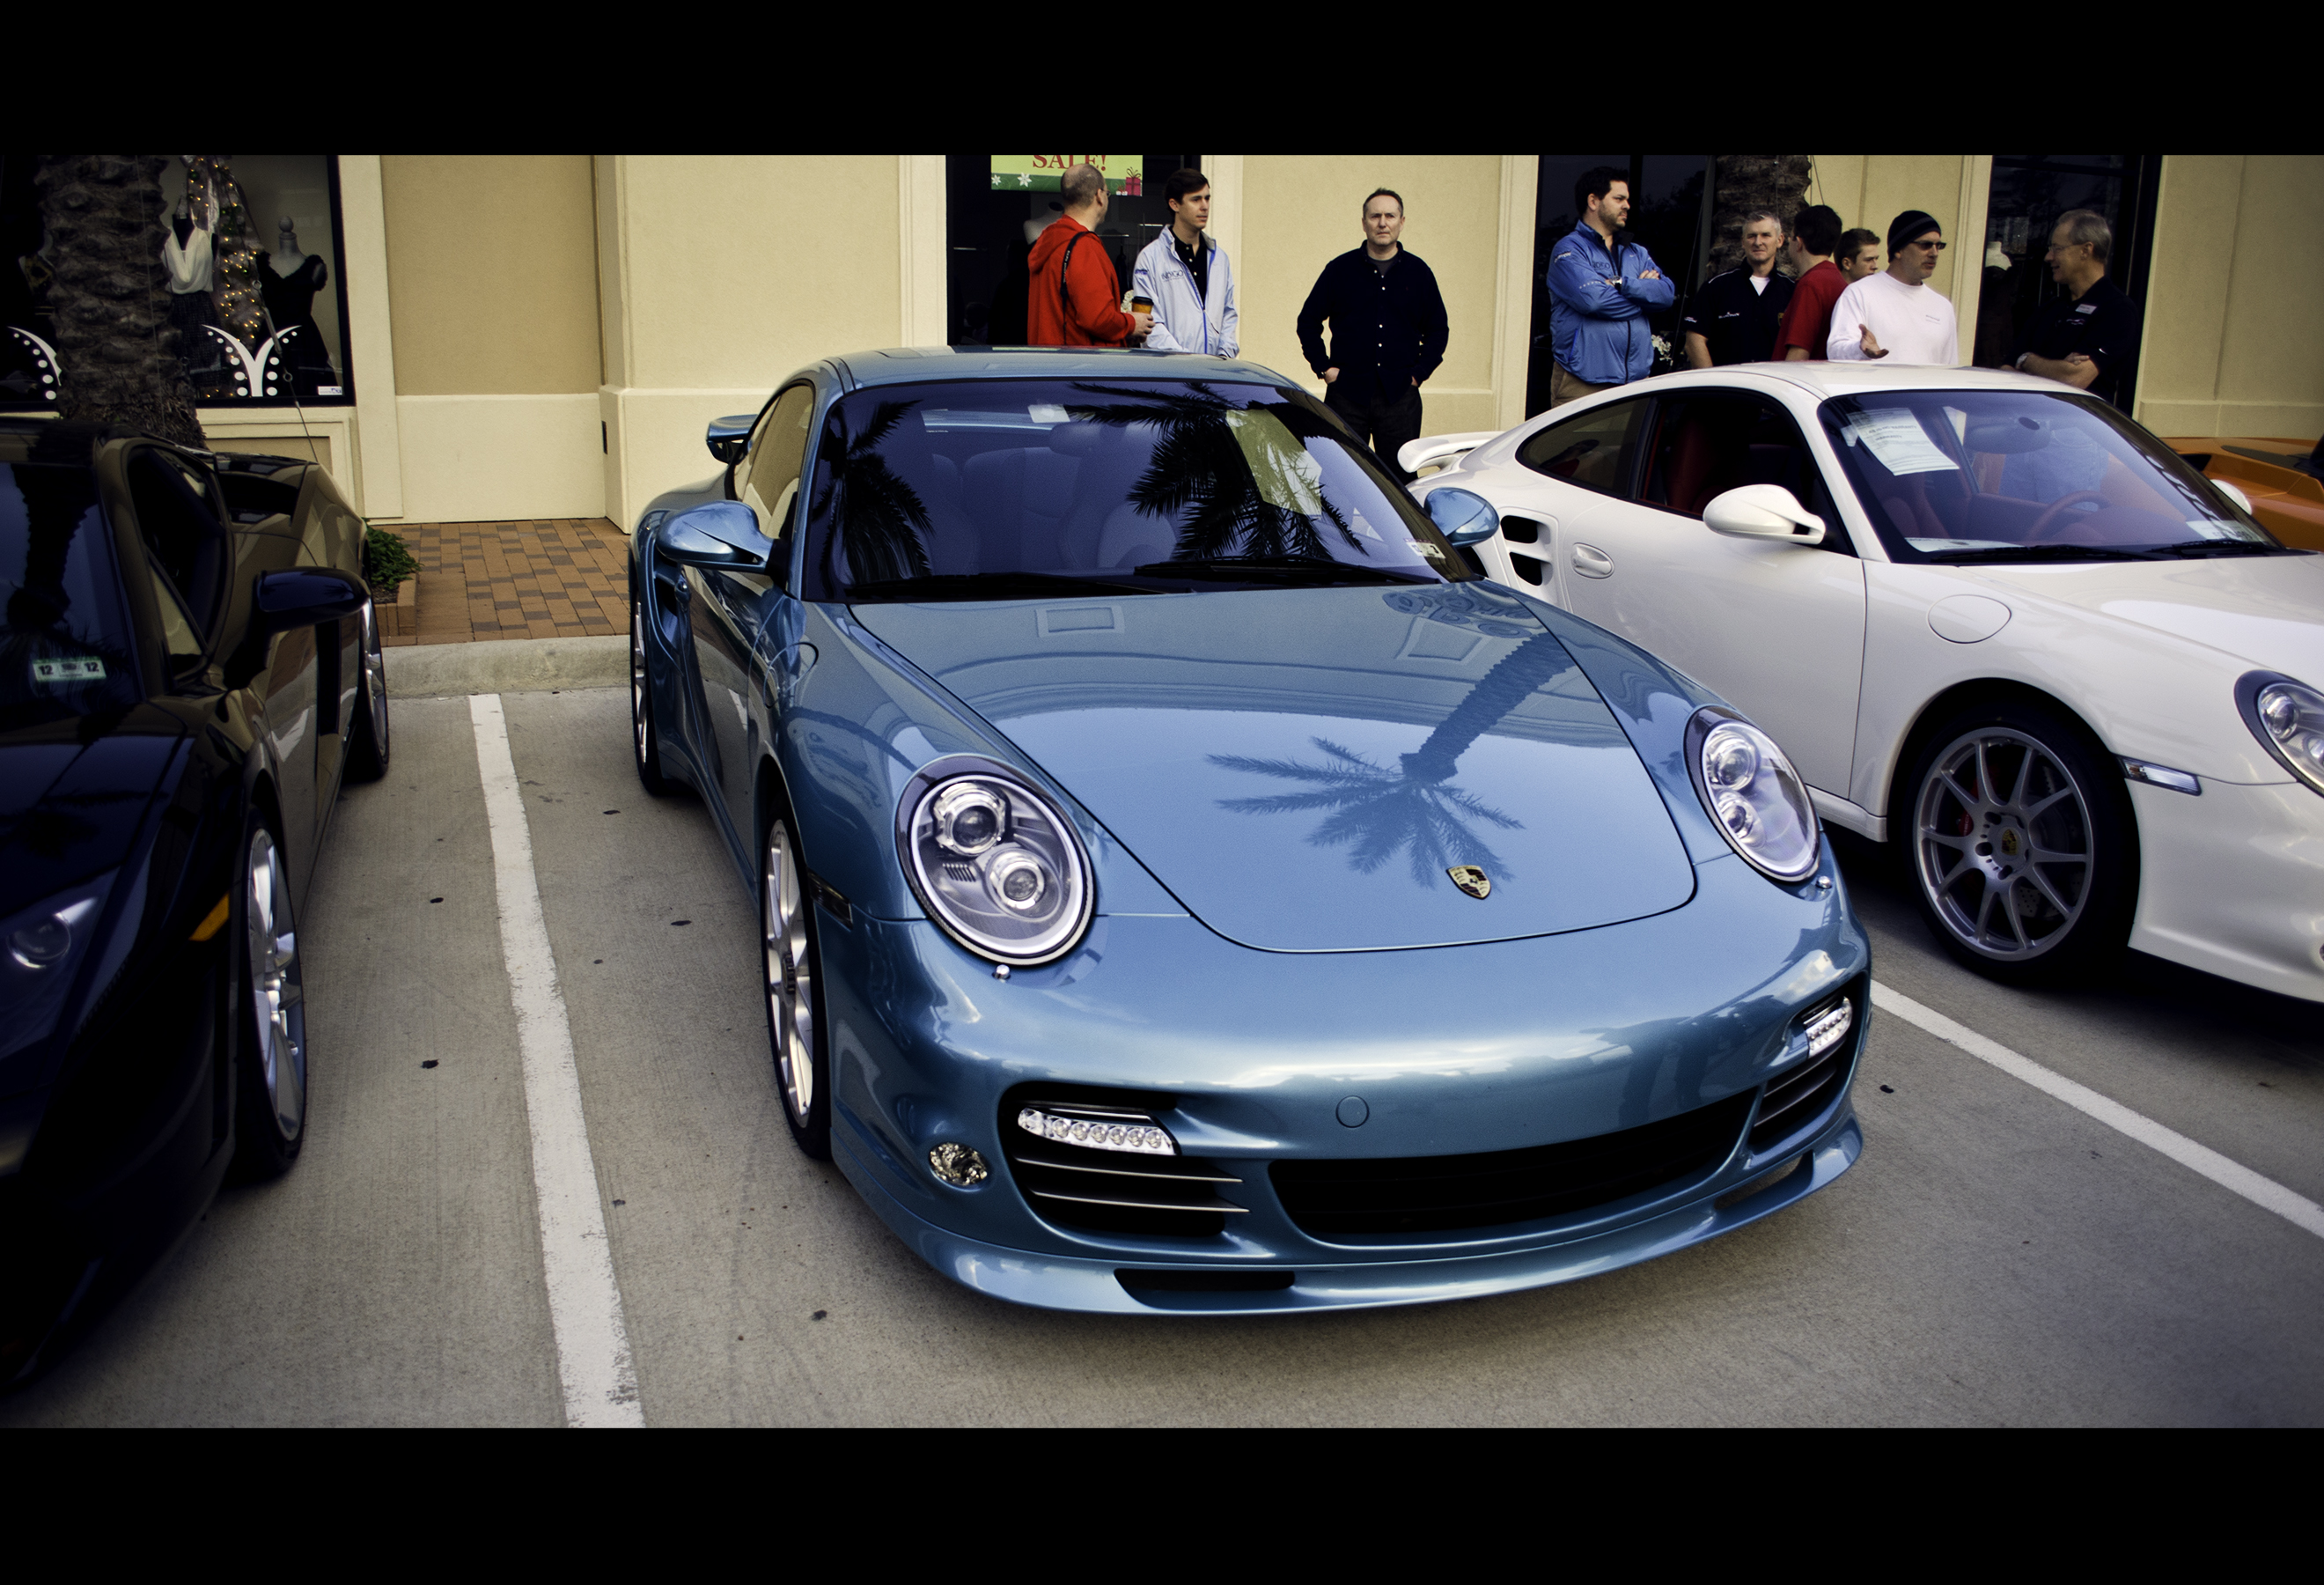 porsche 911 turbo s technical details history photos on better